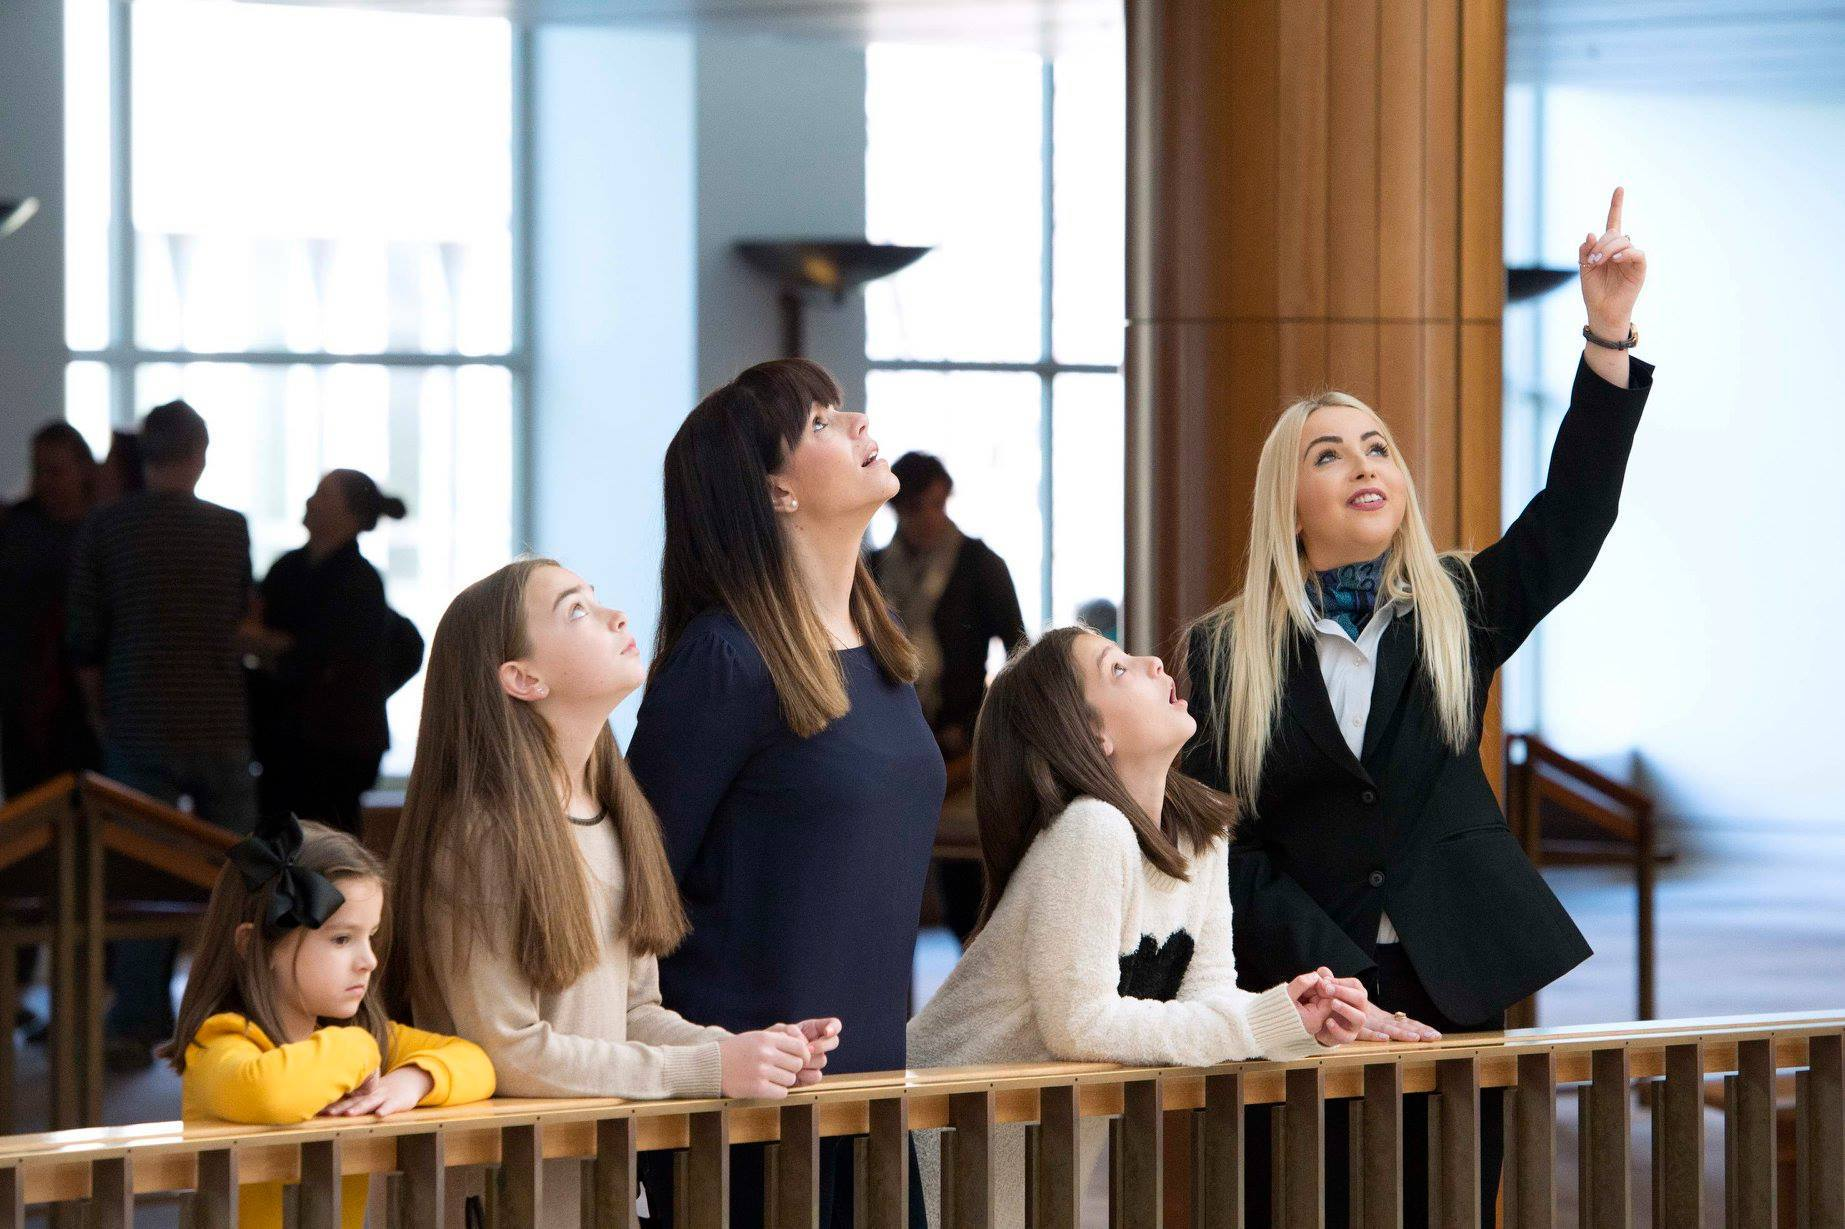 Free Guided Tours at Canberra's Attractions - Canberra